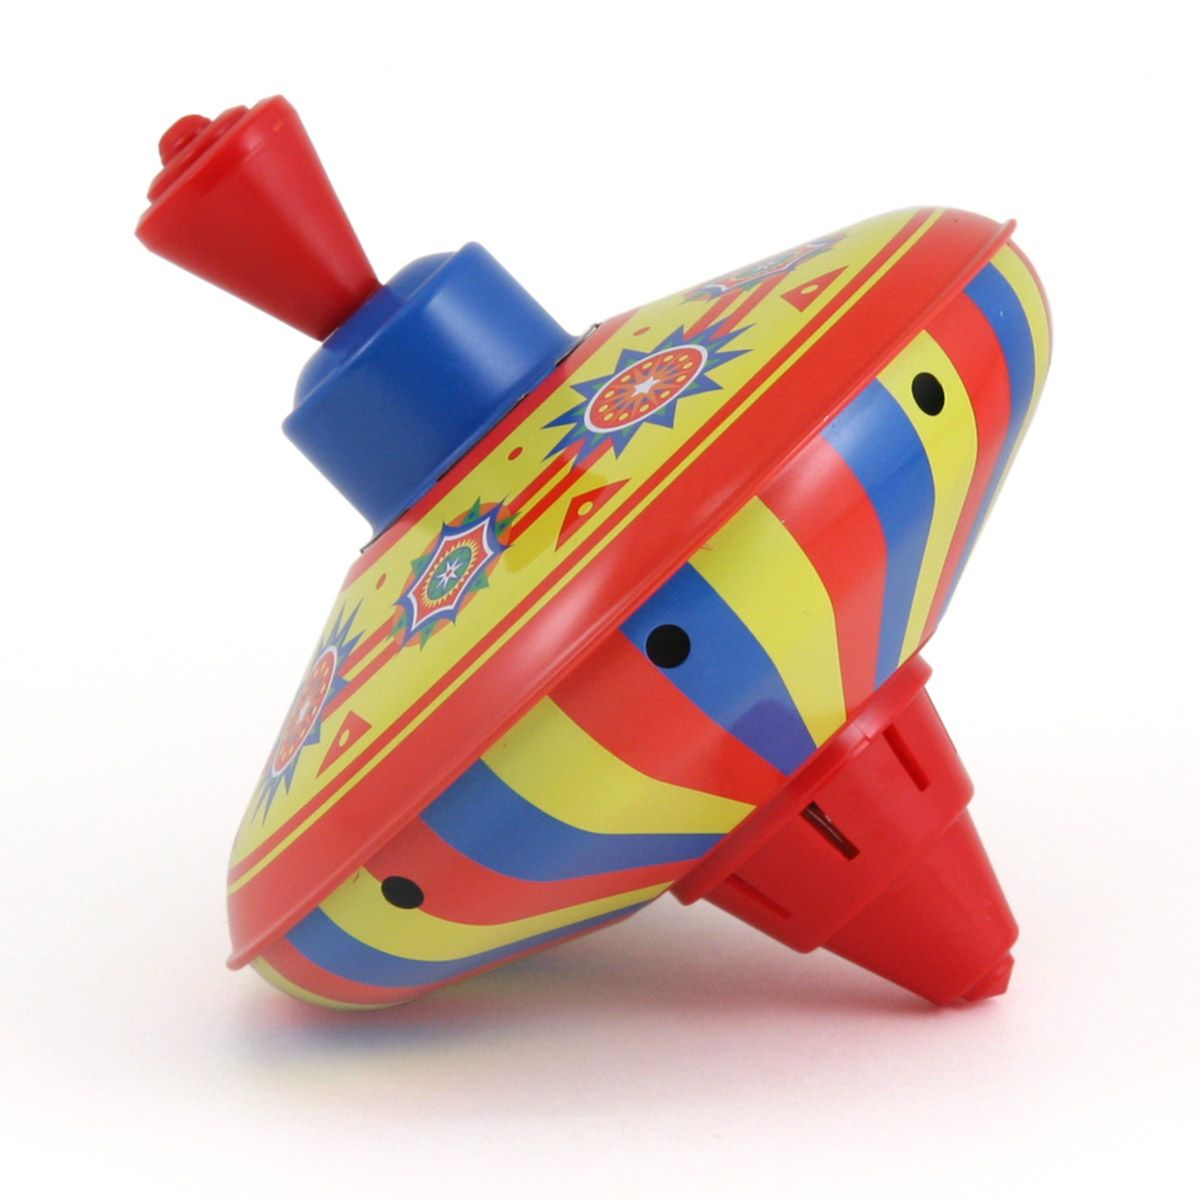 Tin Top Old Fashioned Spinning Plunger Toy Classic Kids